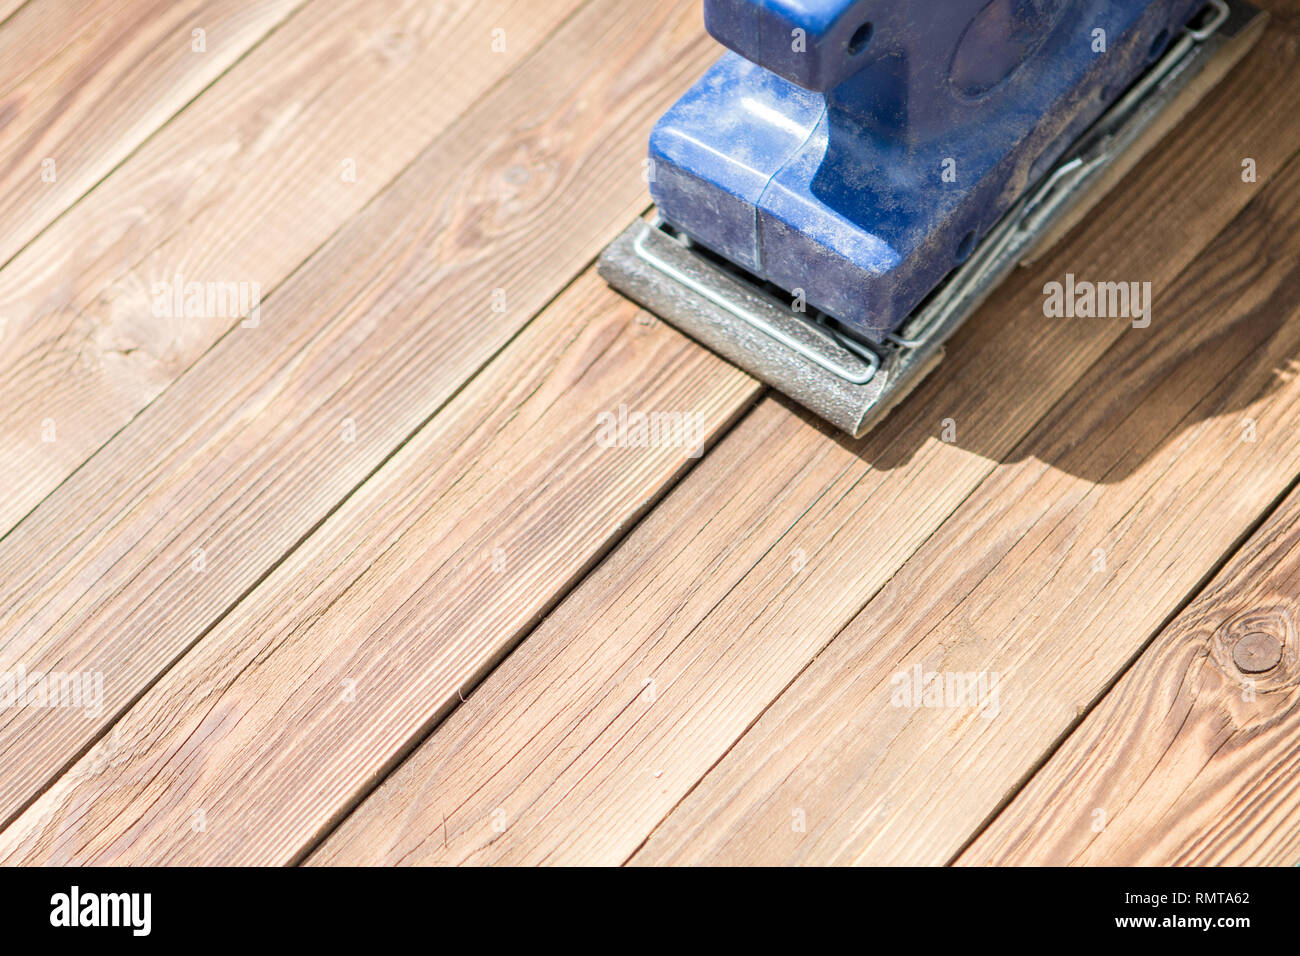 Wooden floor and blue grinder - Stock Image